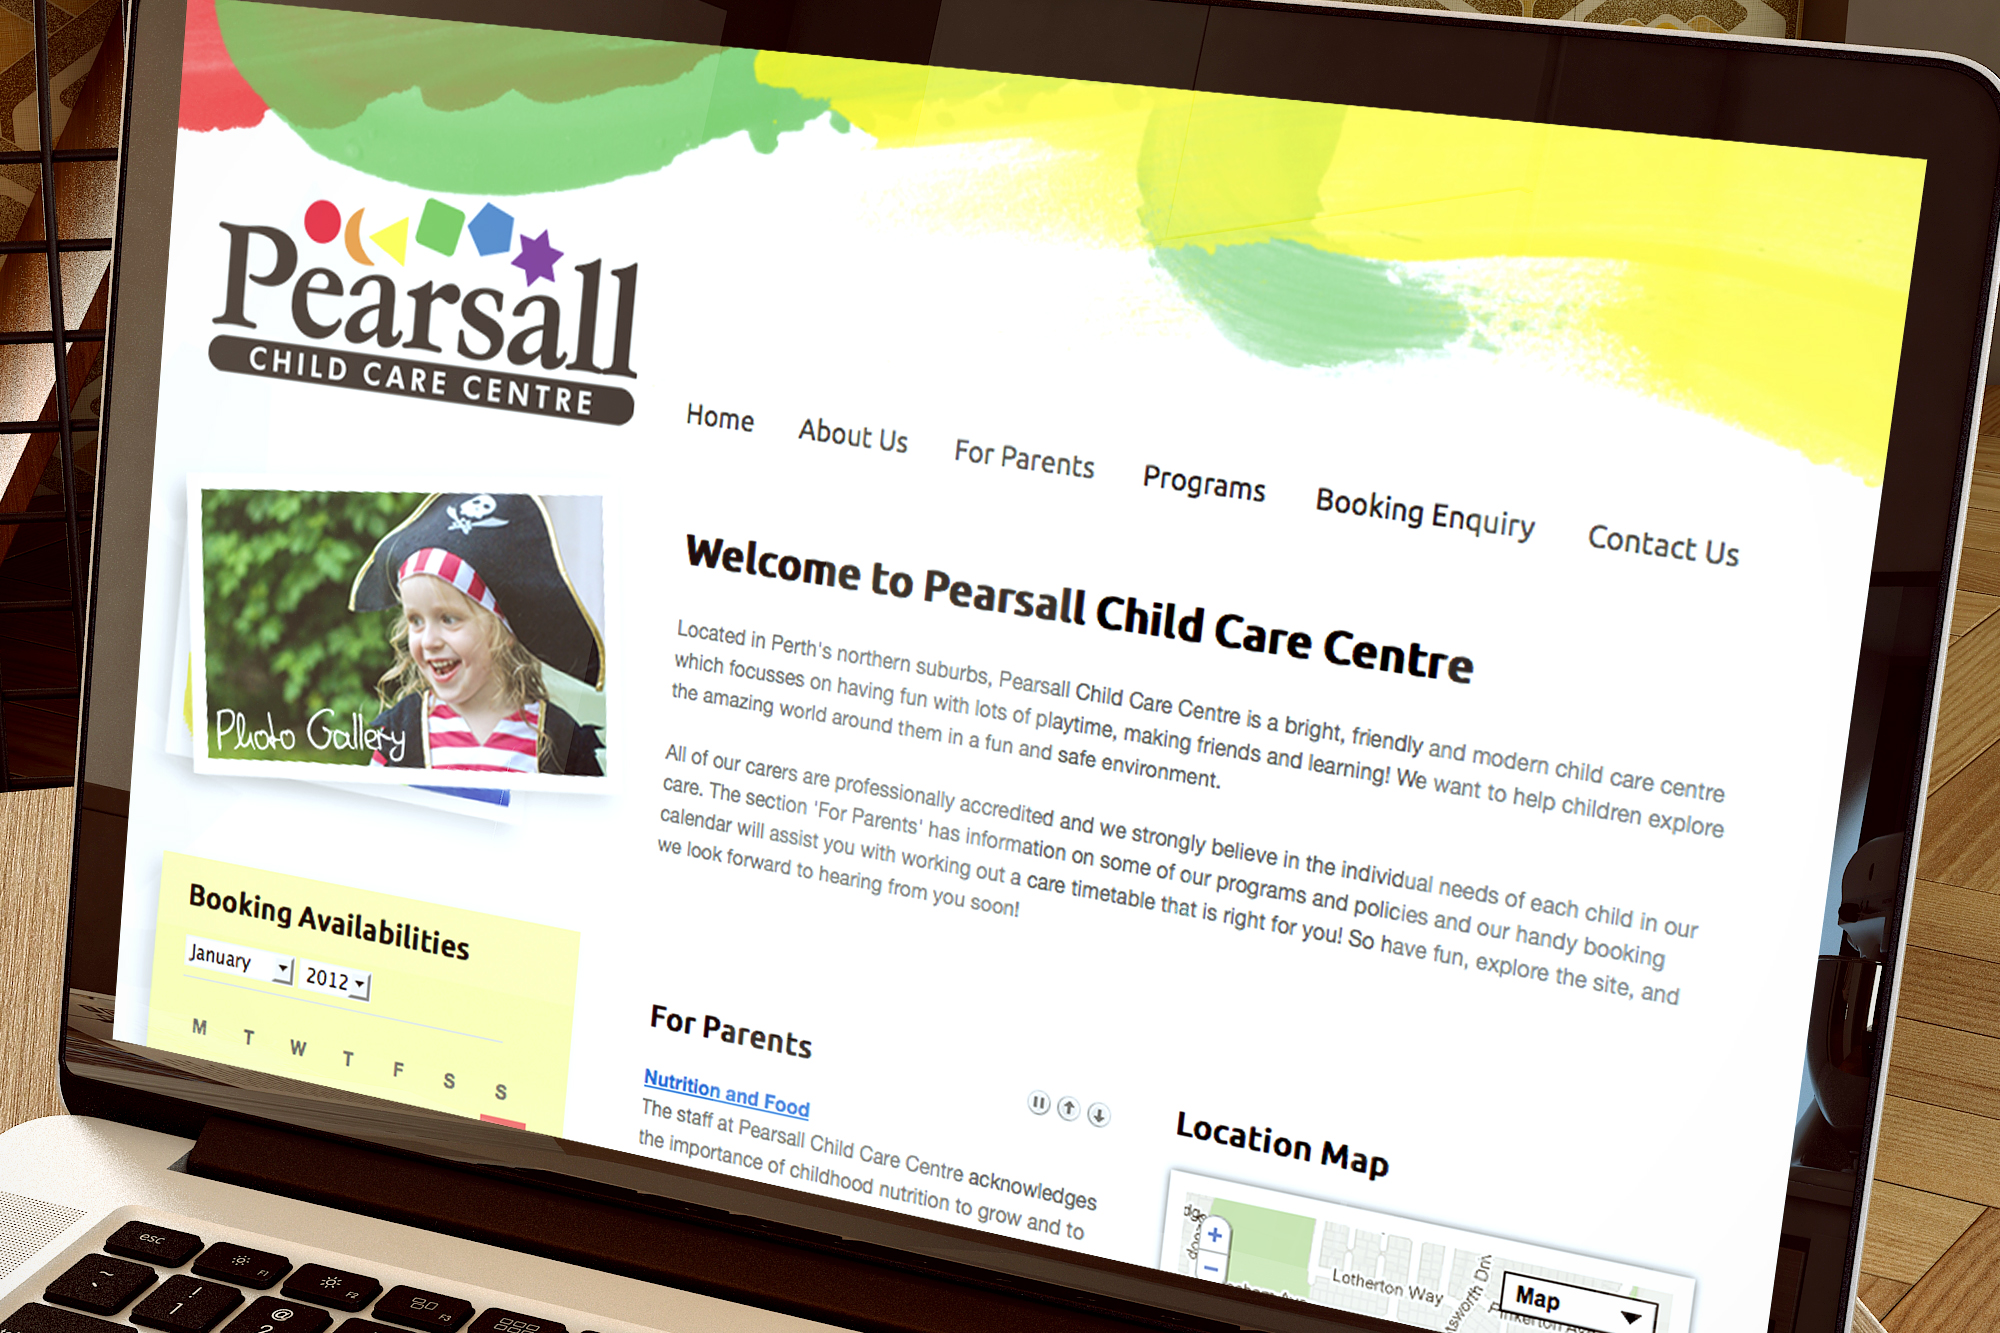 Pearsall Child Care Centre